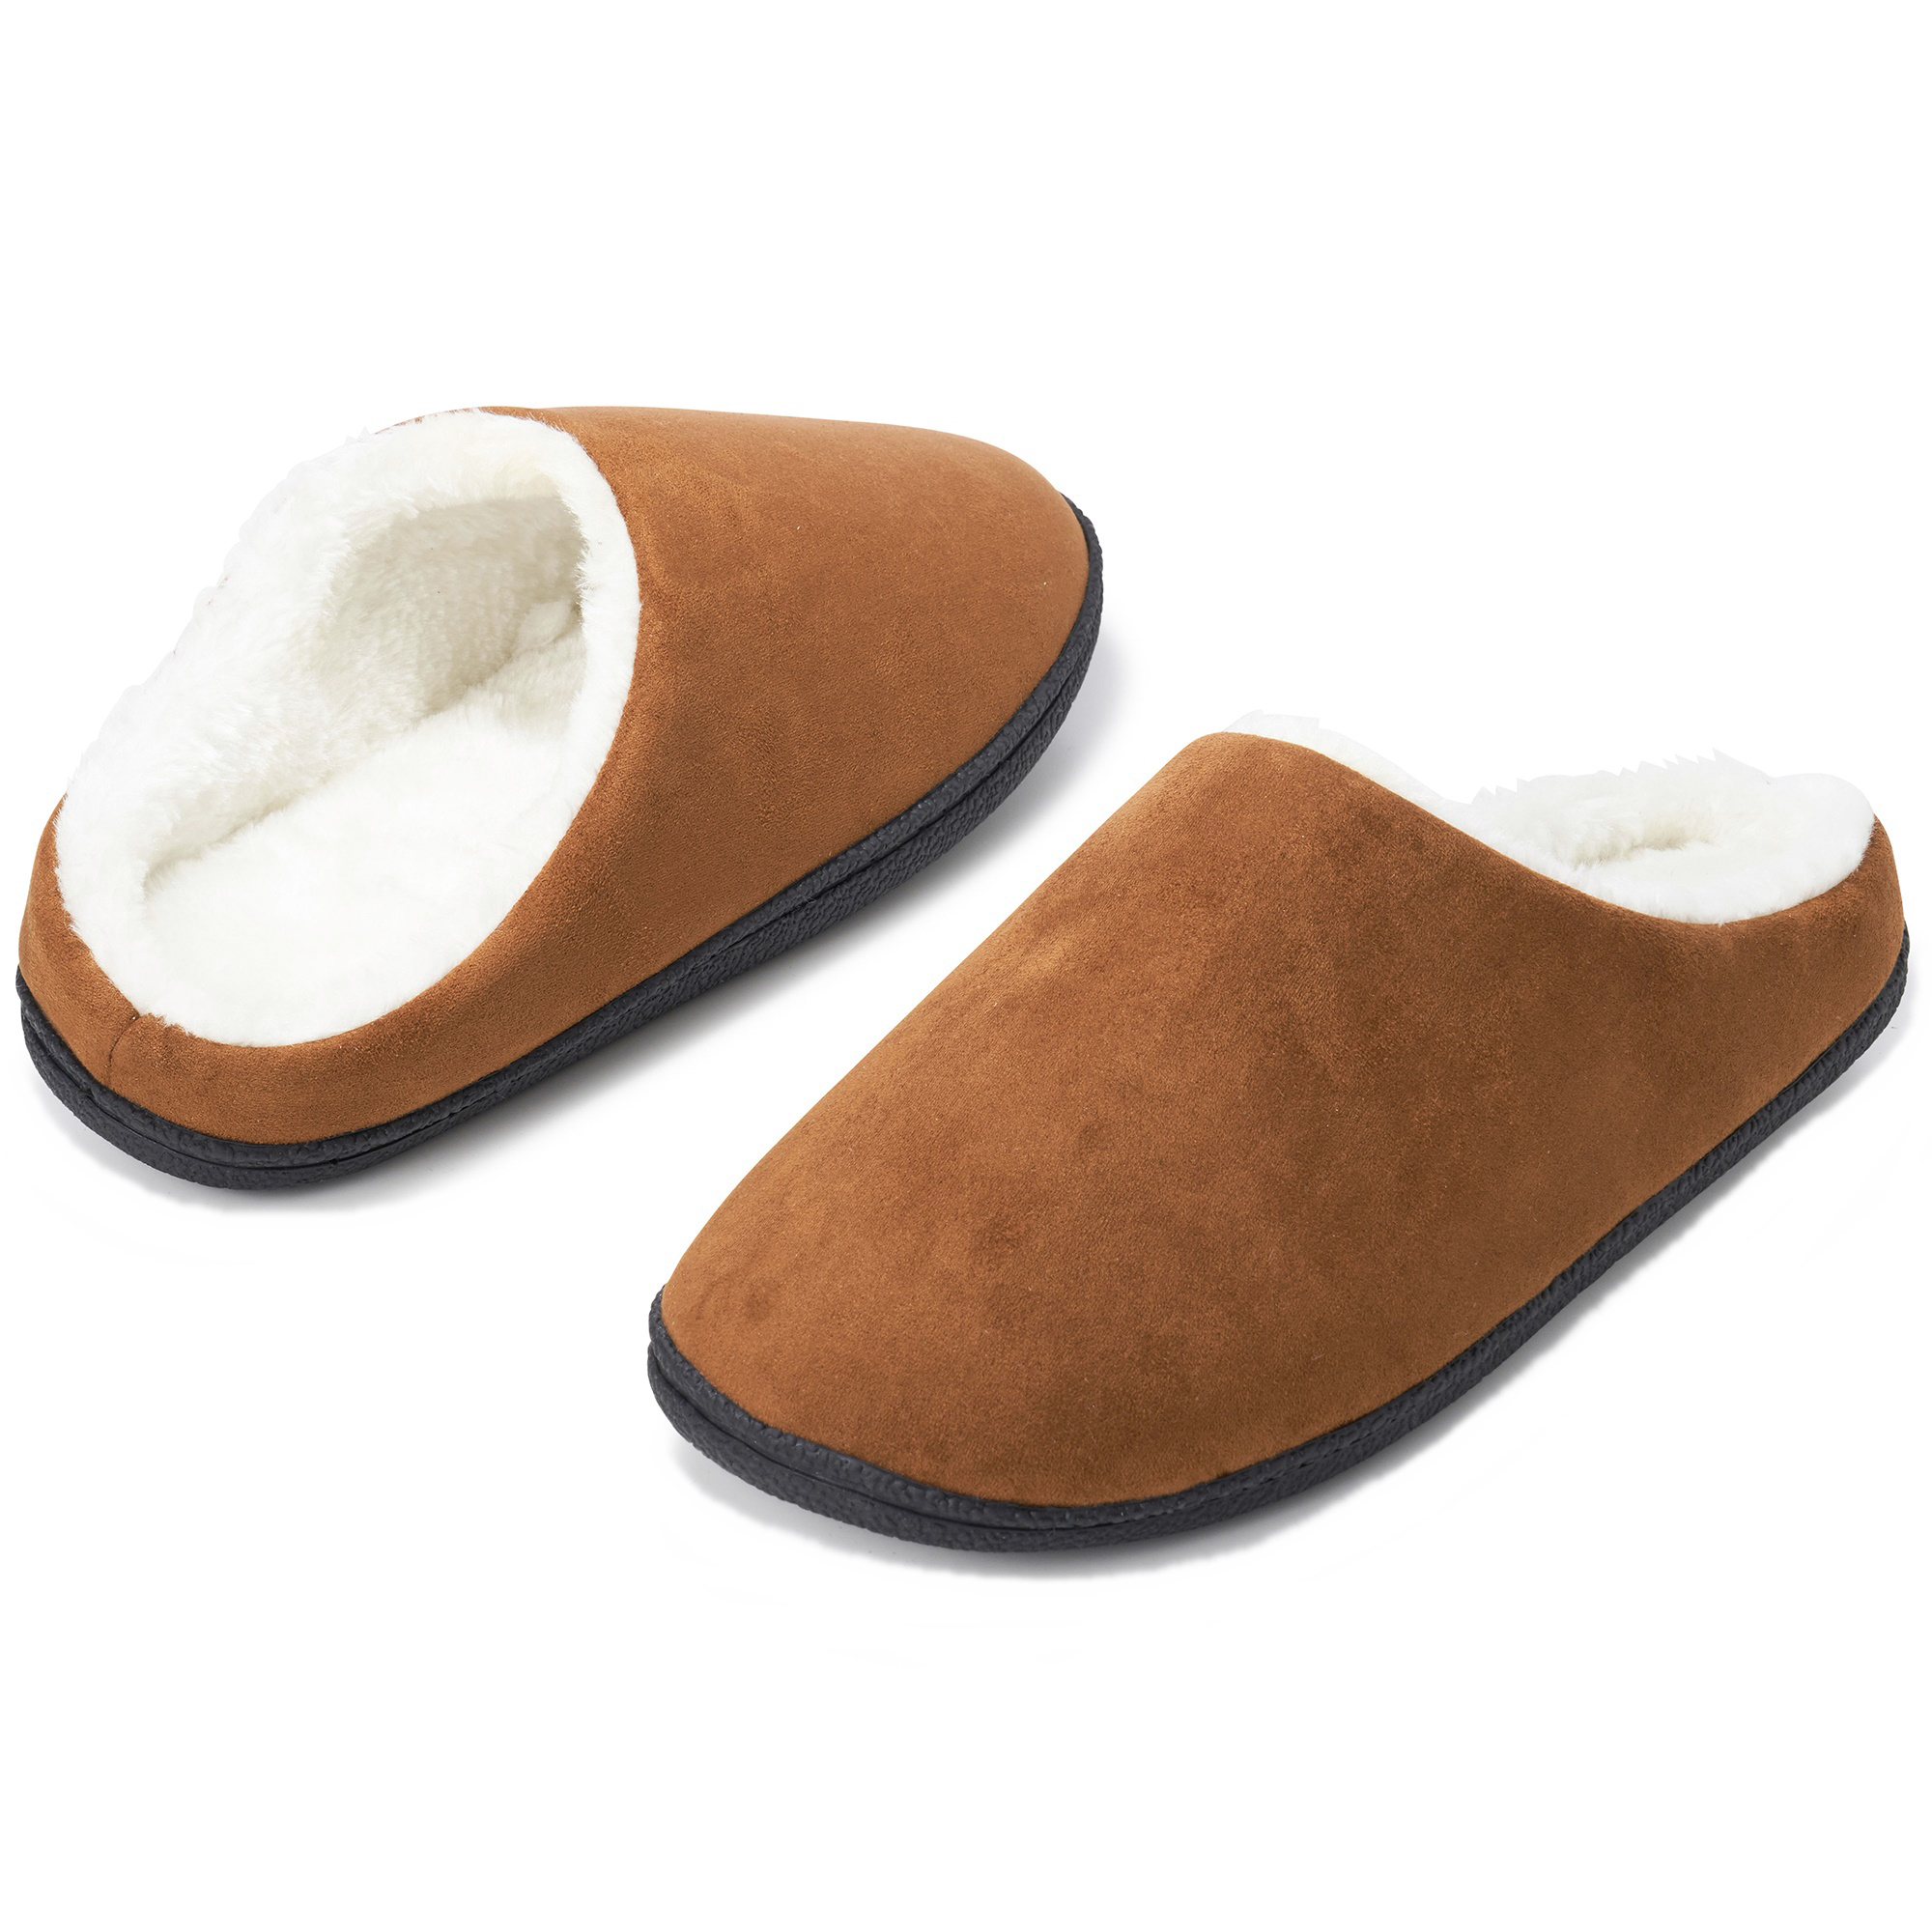 Alpine-Swiss-Mens-Memory-Foam-Clog-Slippers-Indoor-Comfort-Slip-On-House-Shoes thumbnail 20